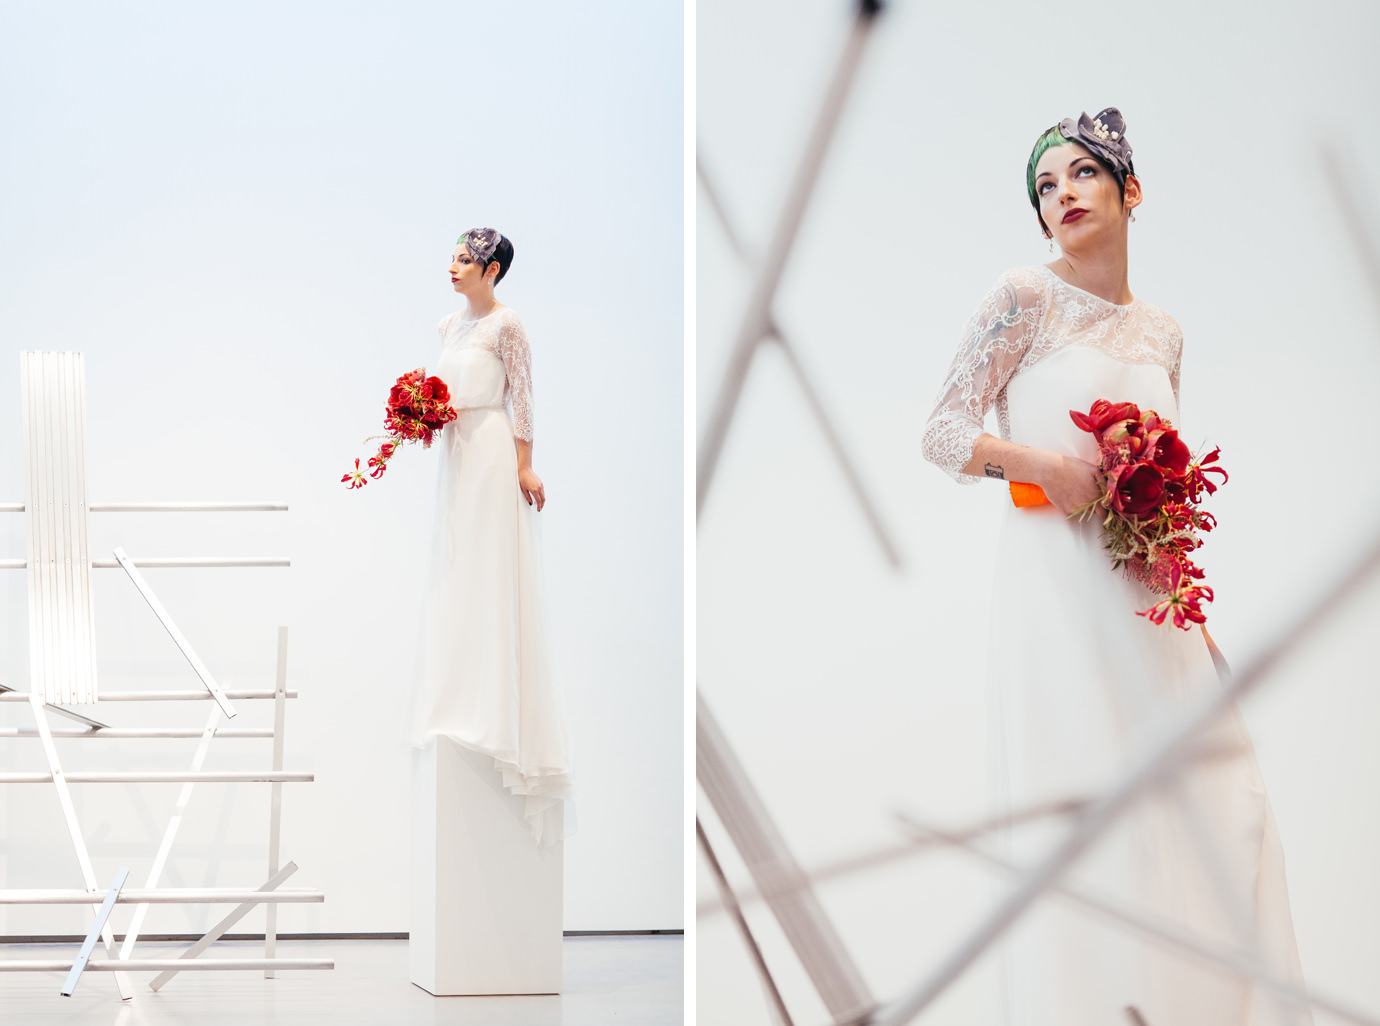 Creative wedding portraits against Hepworth artworks